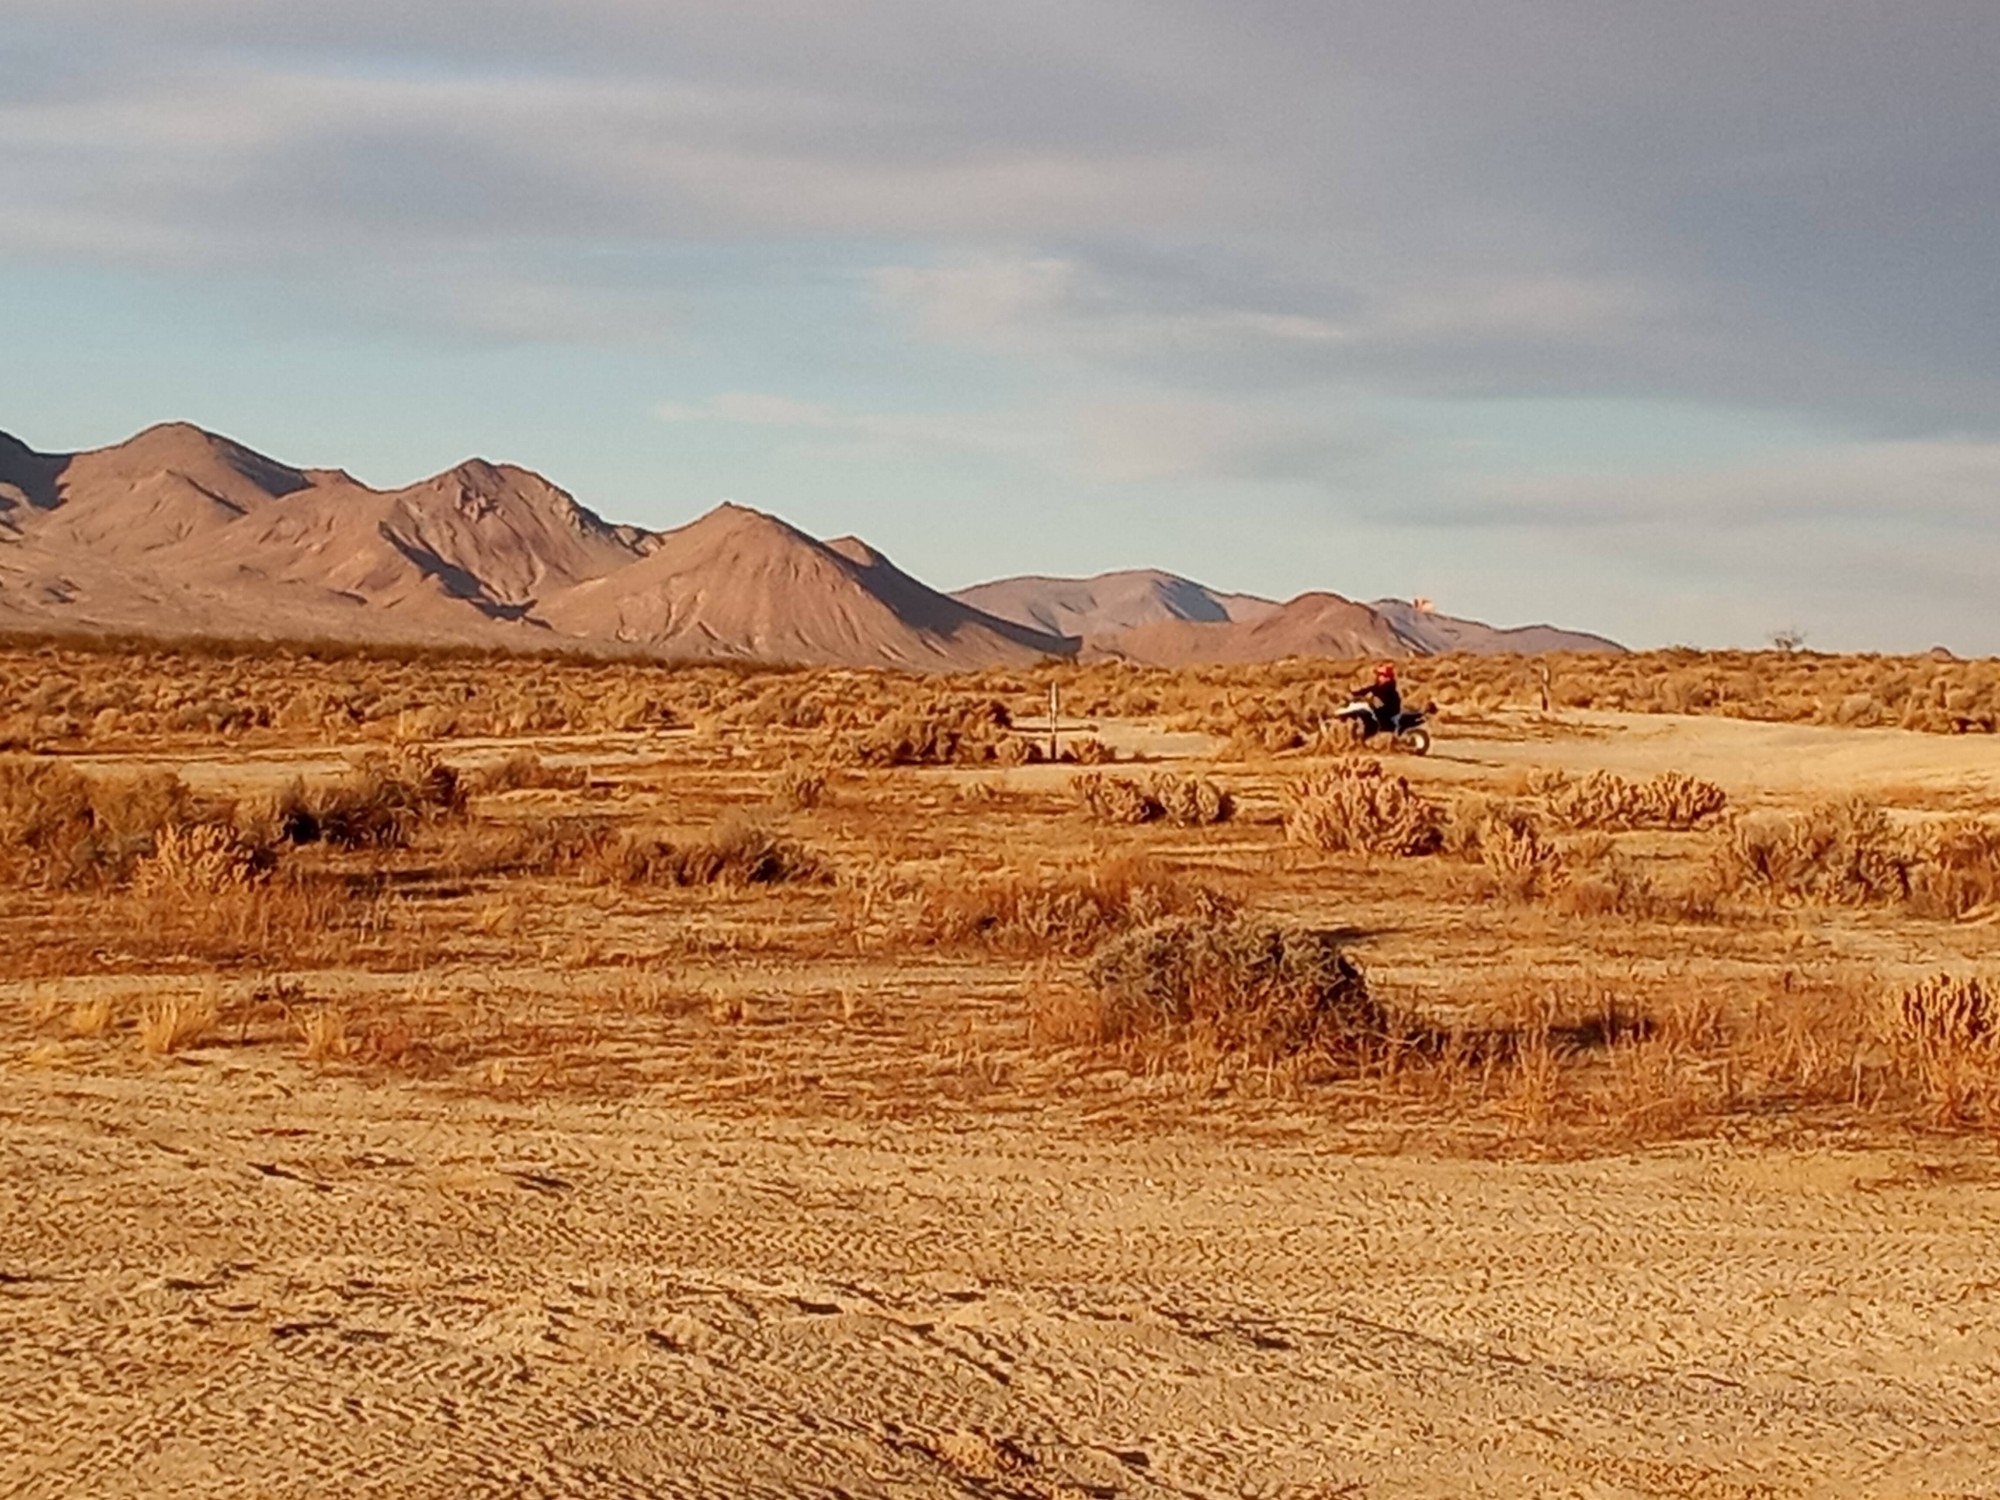 View of the mountains from BLM land near Randsburg.